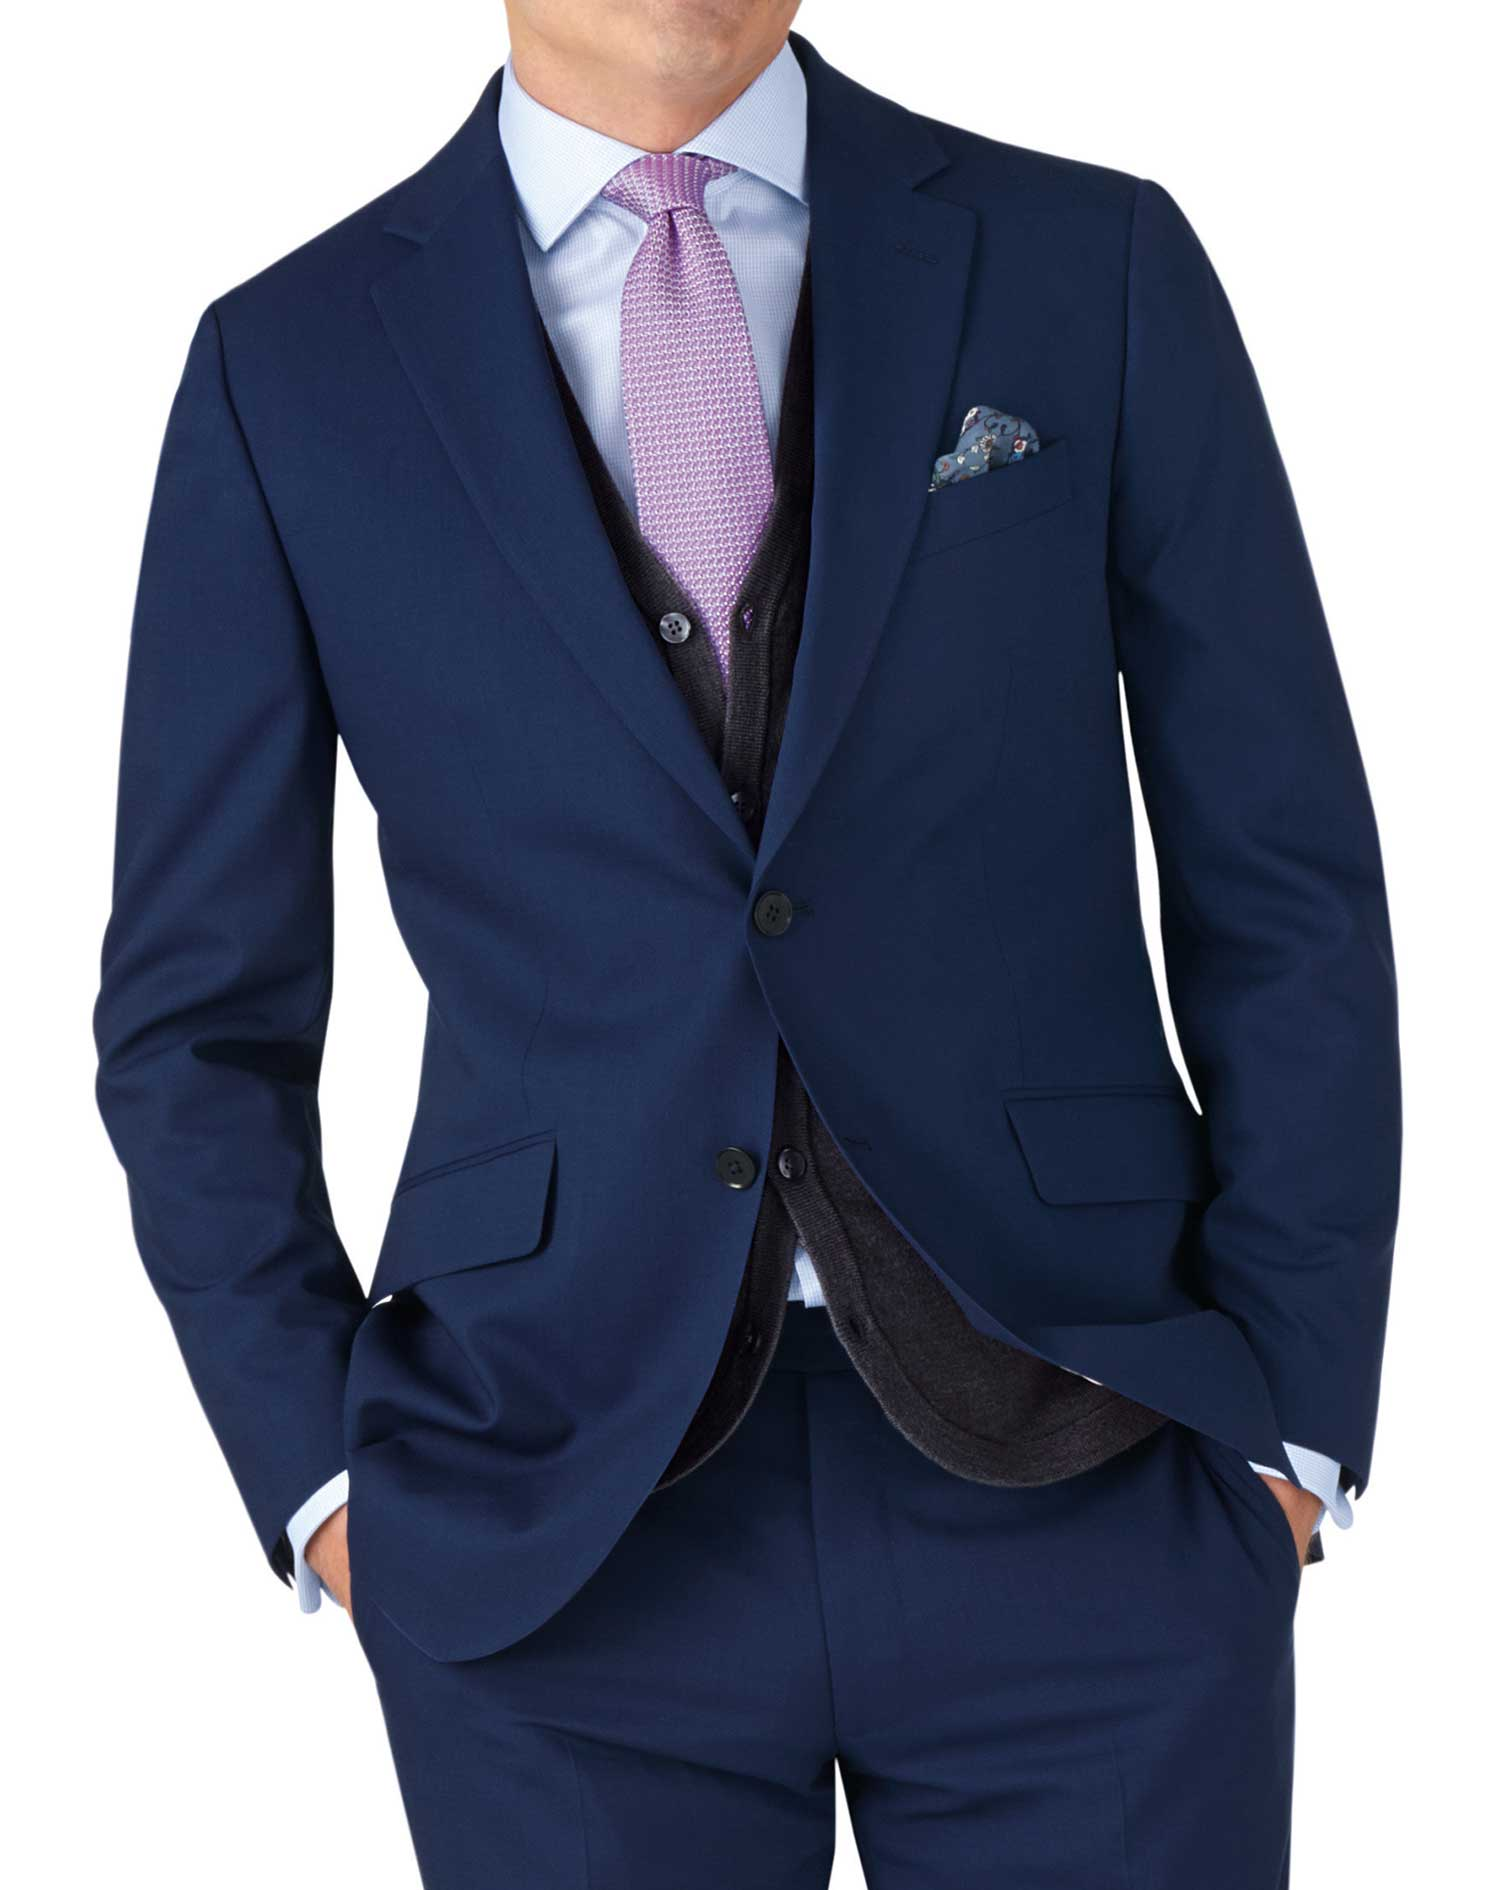 Royal Blue Slim Fit Crepe Business Suit Wool Jacket Size 38 Long by Charles Tyrwhitt